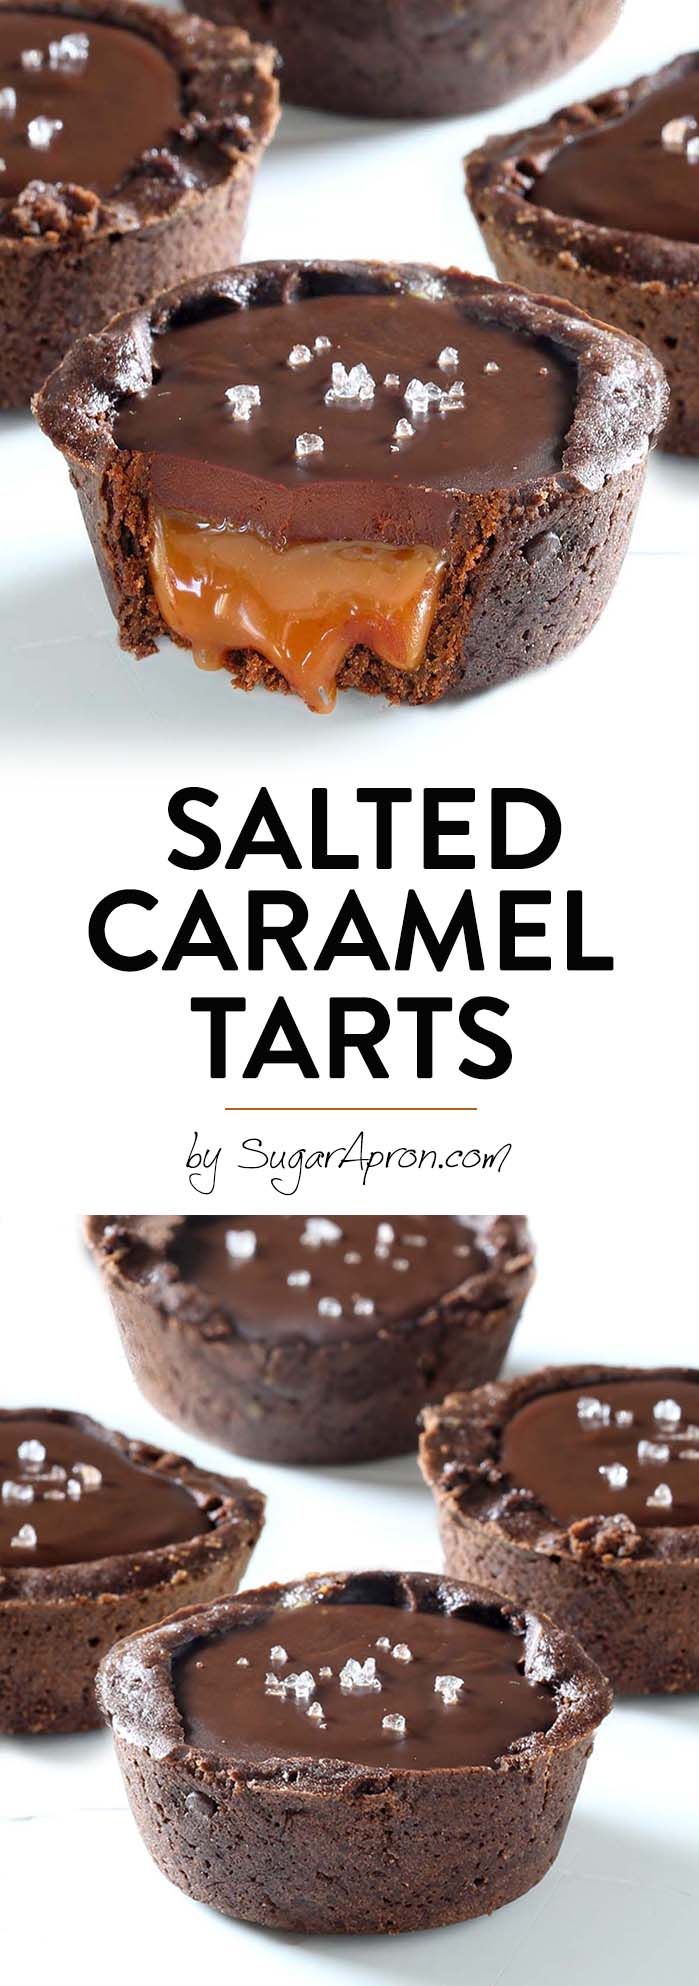 Chocolate Salted Caramel Tarts - Something that every chocolate and caramel fan should taste.